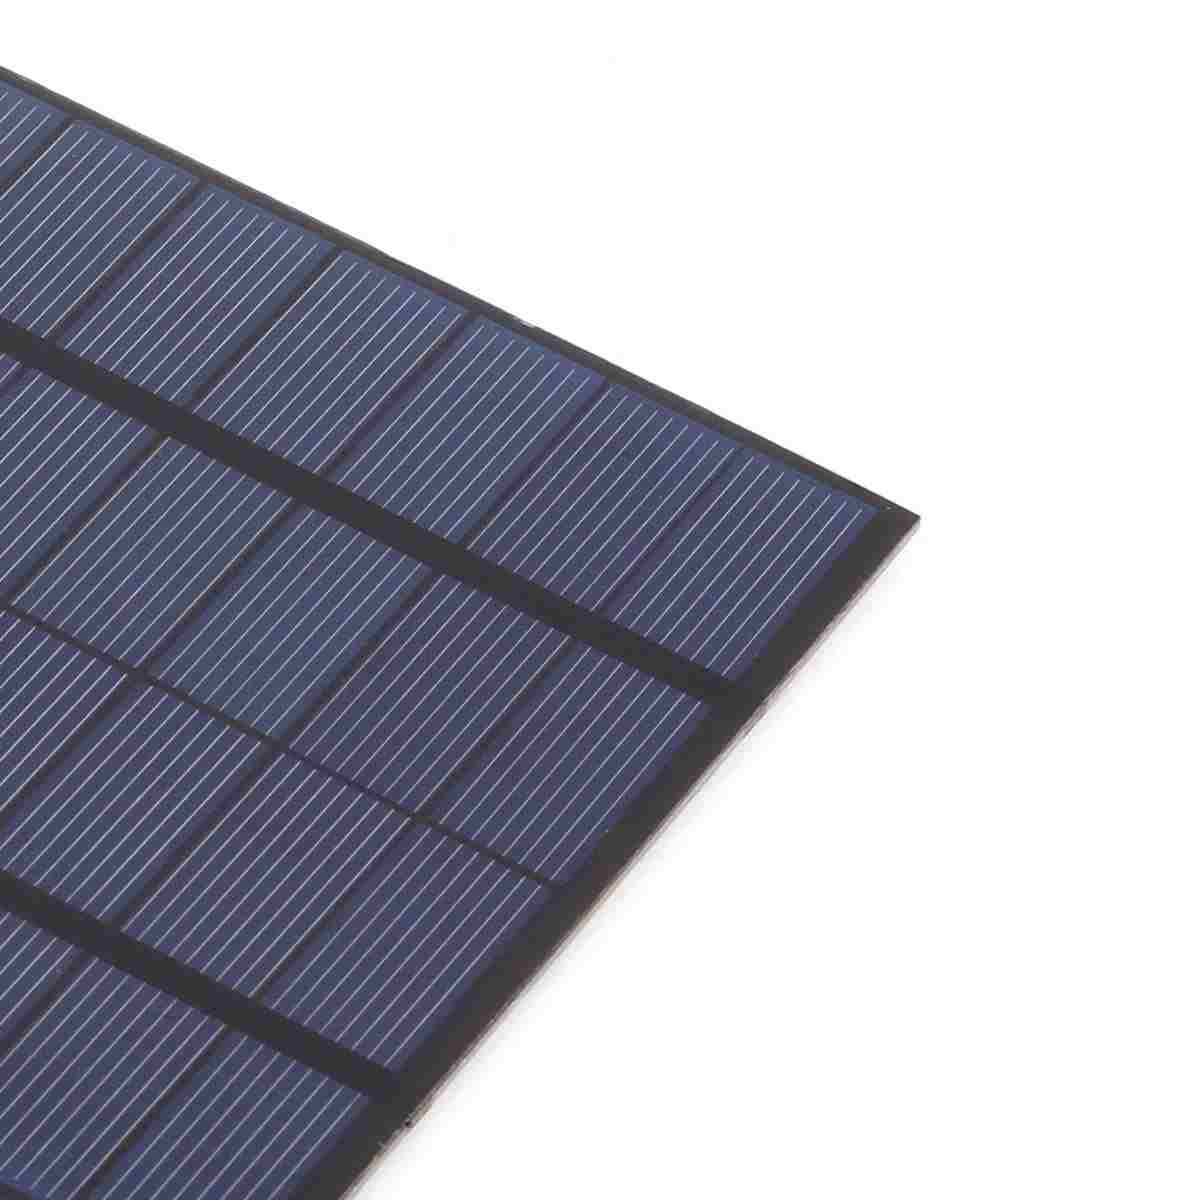 3W 12V Mini Solar Cell Portable DIY Solar Panel for Battery Powered LED Solar Test and Education Thumb 2